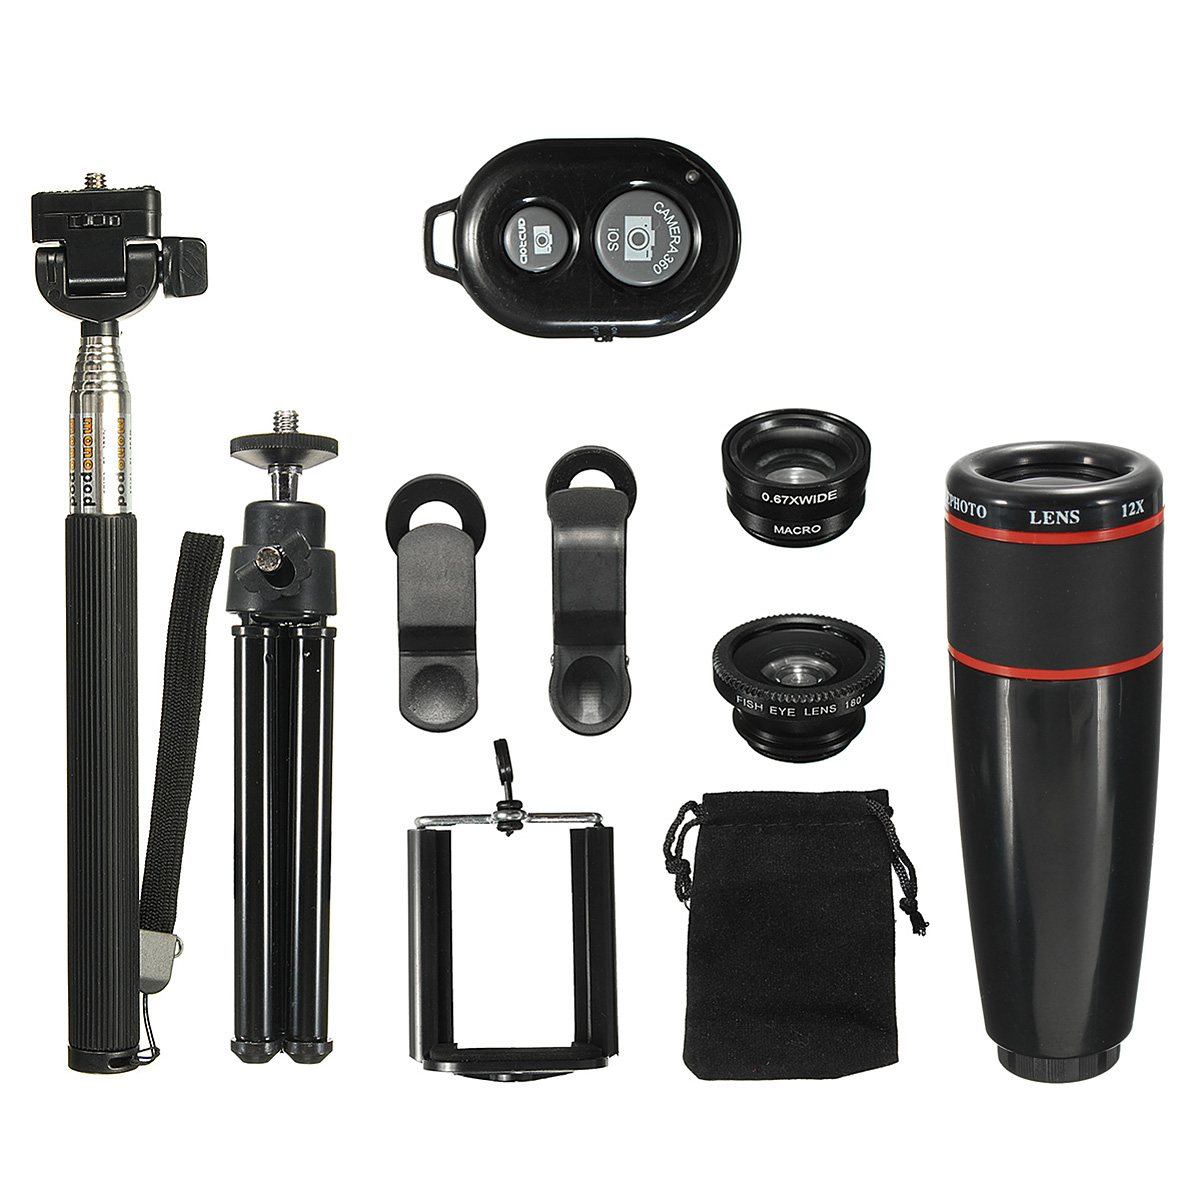 8x 12x Telephoto Lens Kit with Mini Tripod Phone Holder 3 in 1 Lens Bluetooth Remote